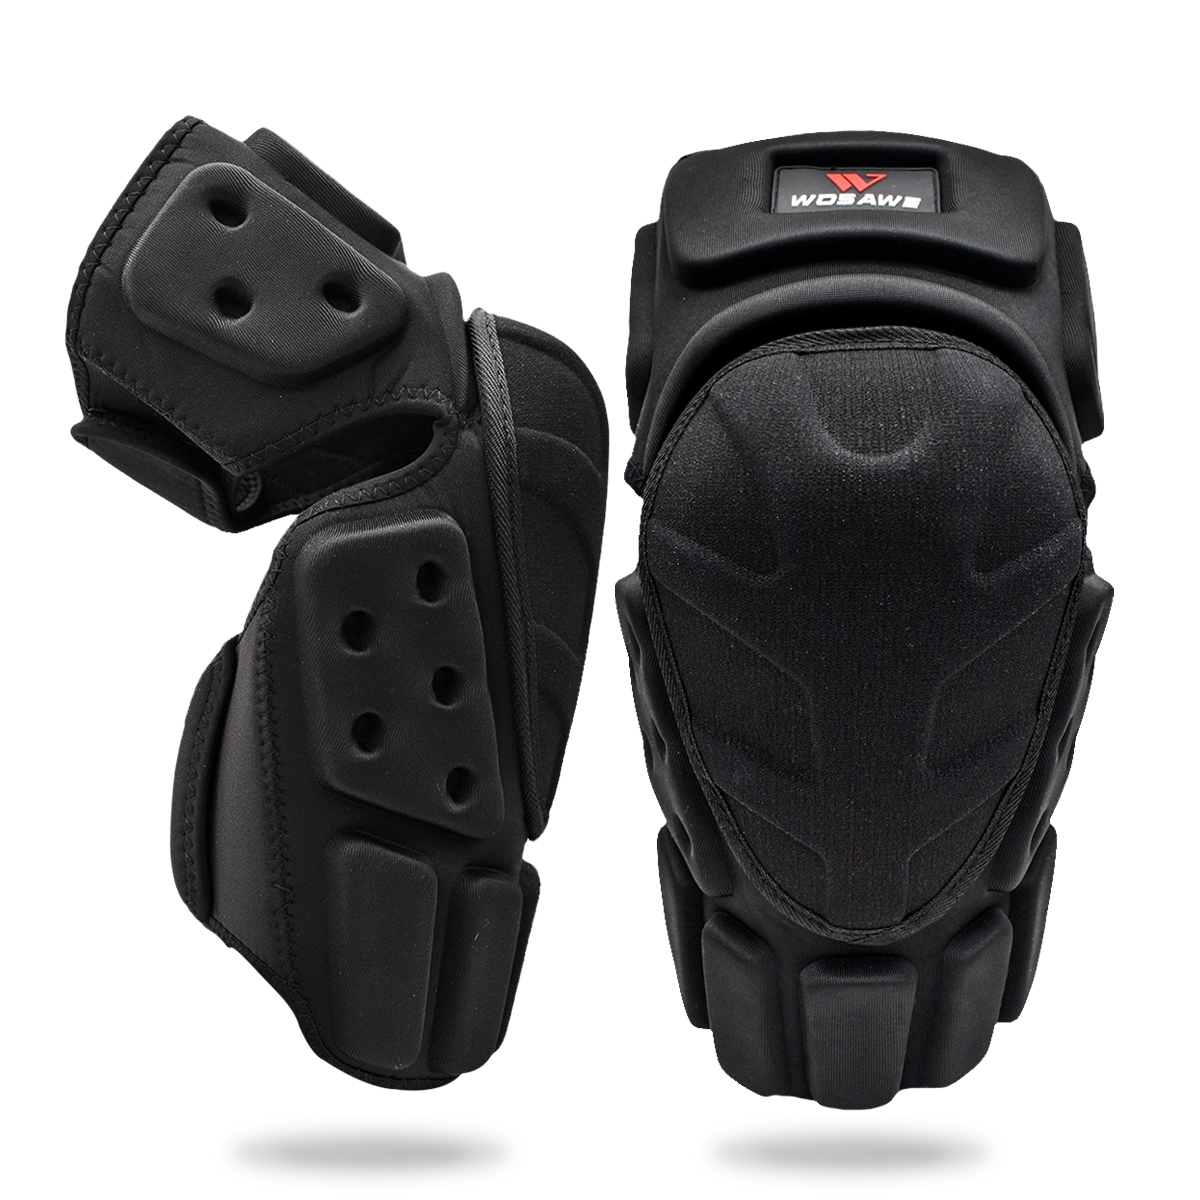 WOSAWE Adjustable Knee Protector Motorcycle Motocross Riding Cycling Skating Ski Knee Pads Kneepads Black Brace Support